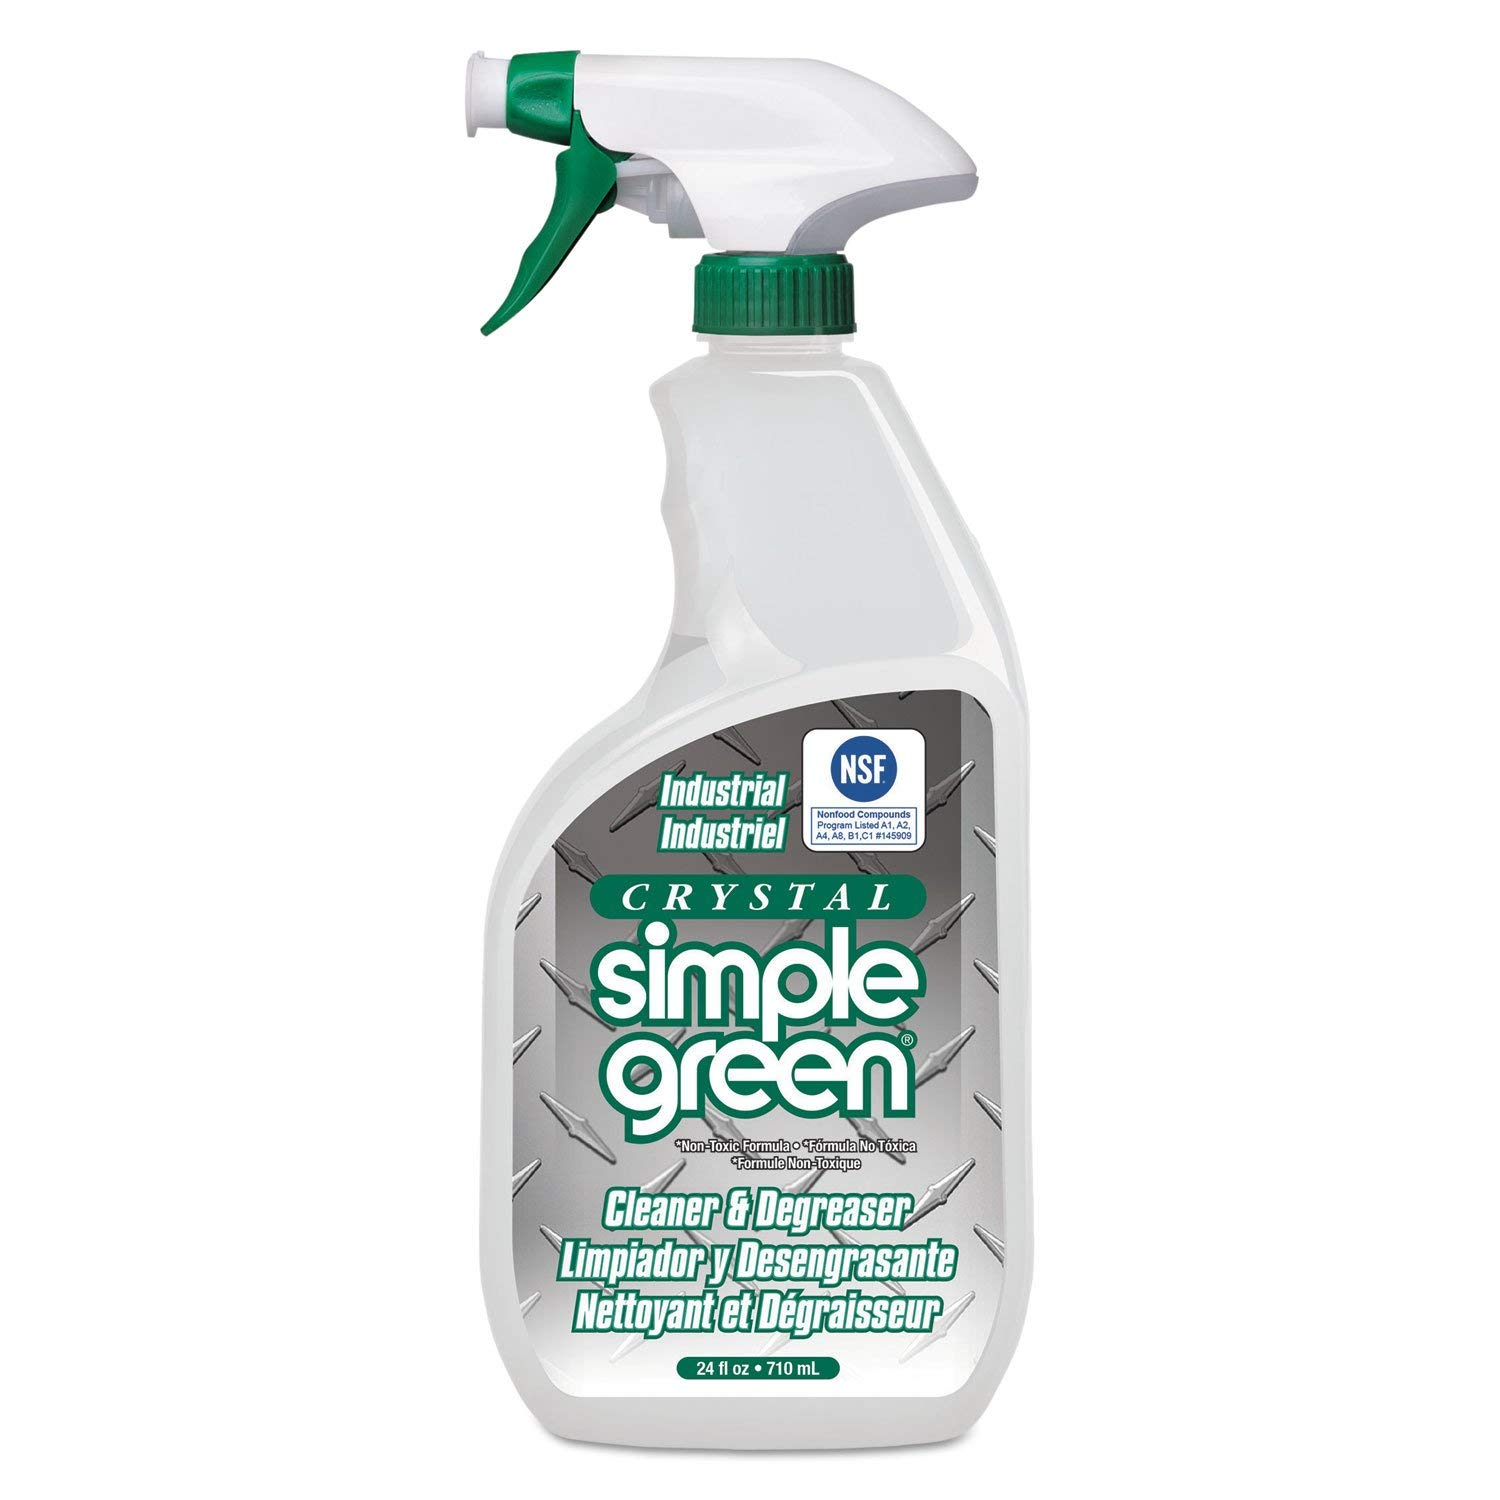 Simple Green 19024 Crystal Industrial Cleaner/Degreaser, 24oz Bottle